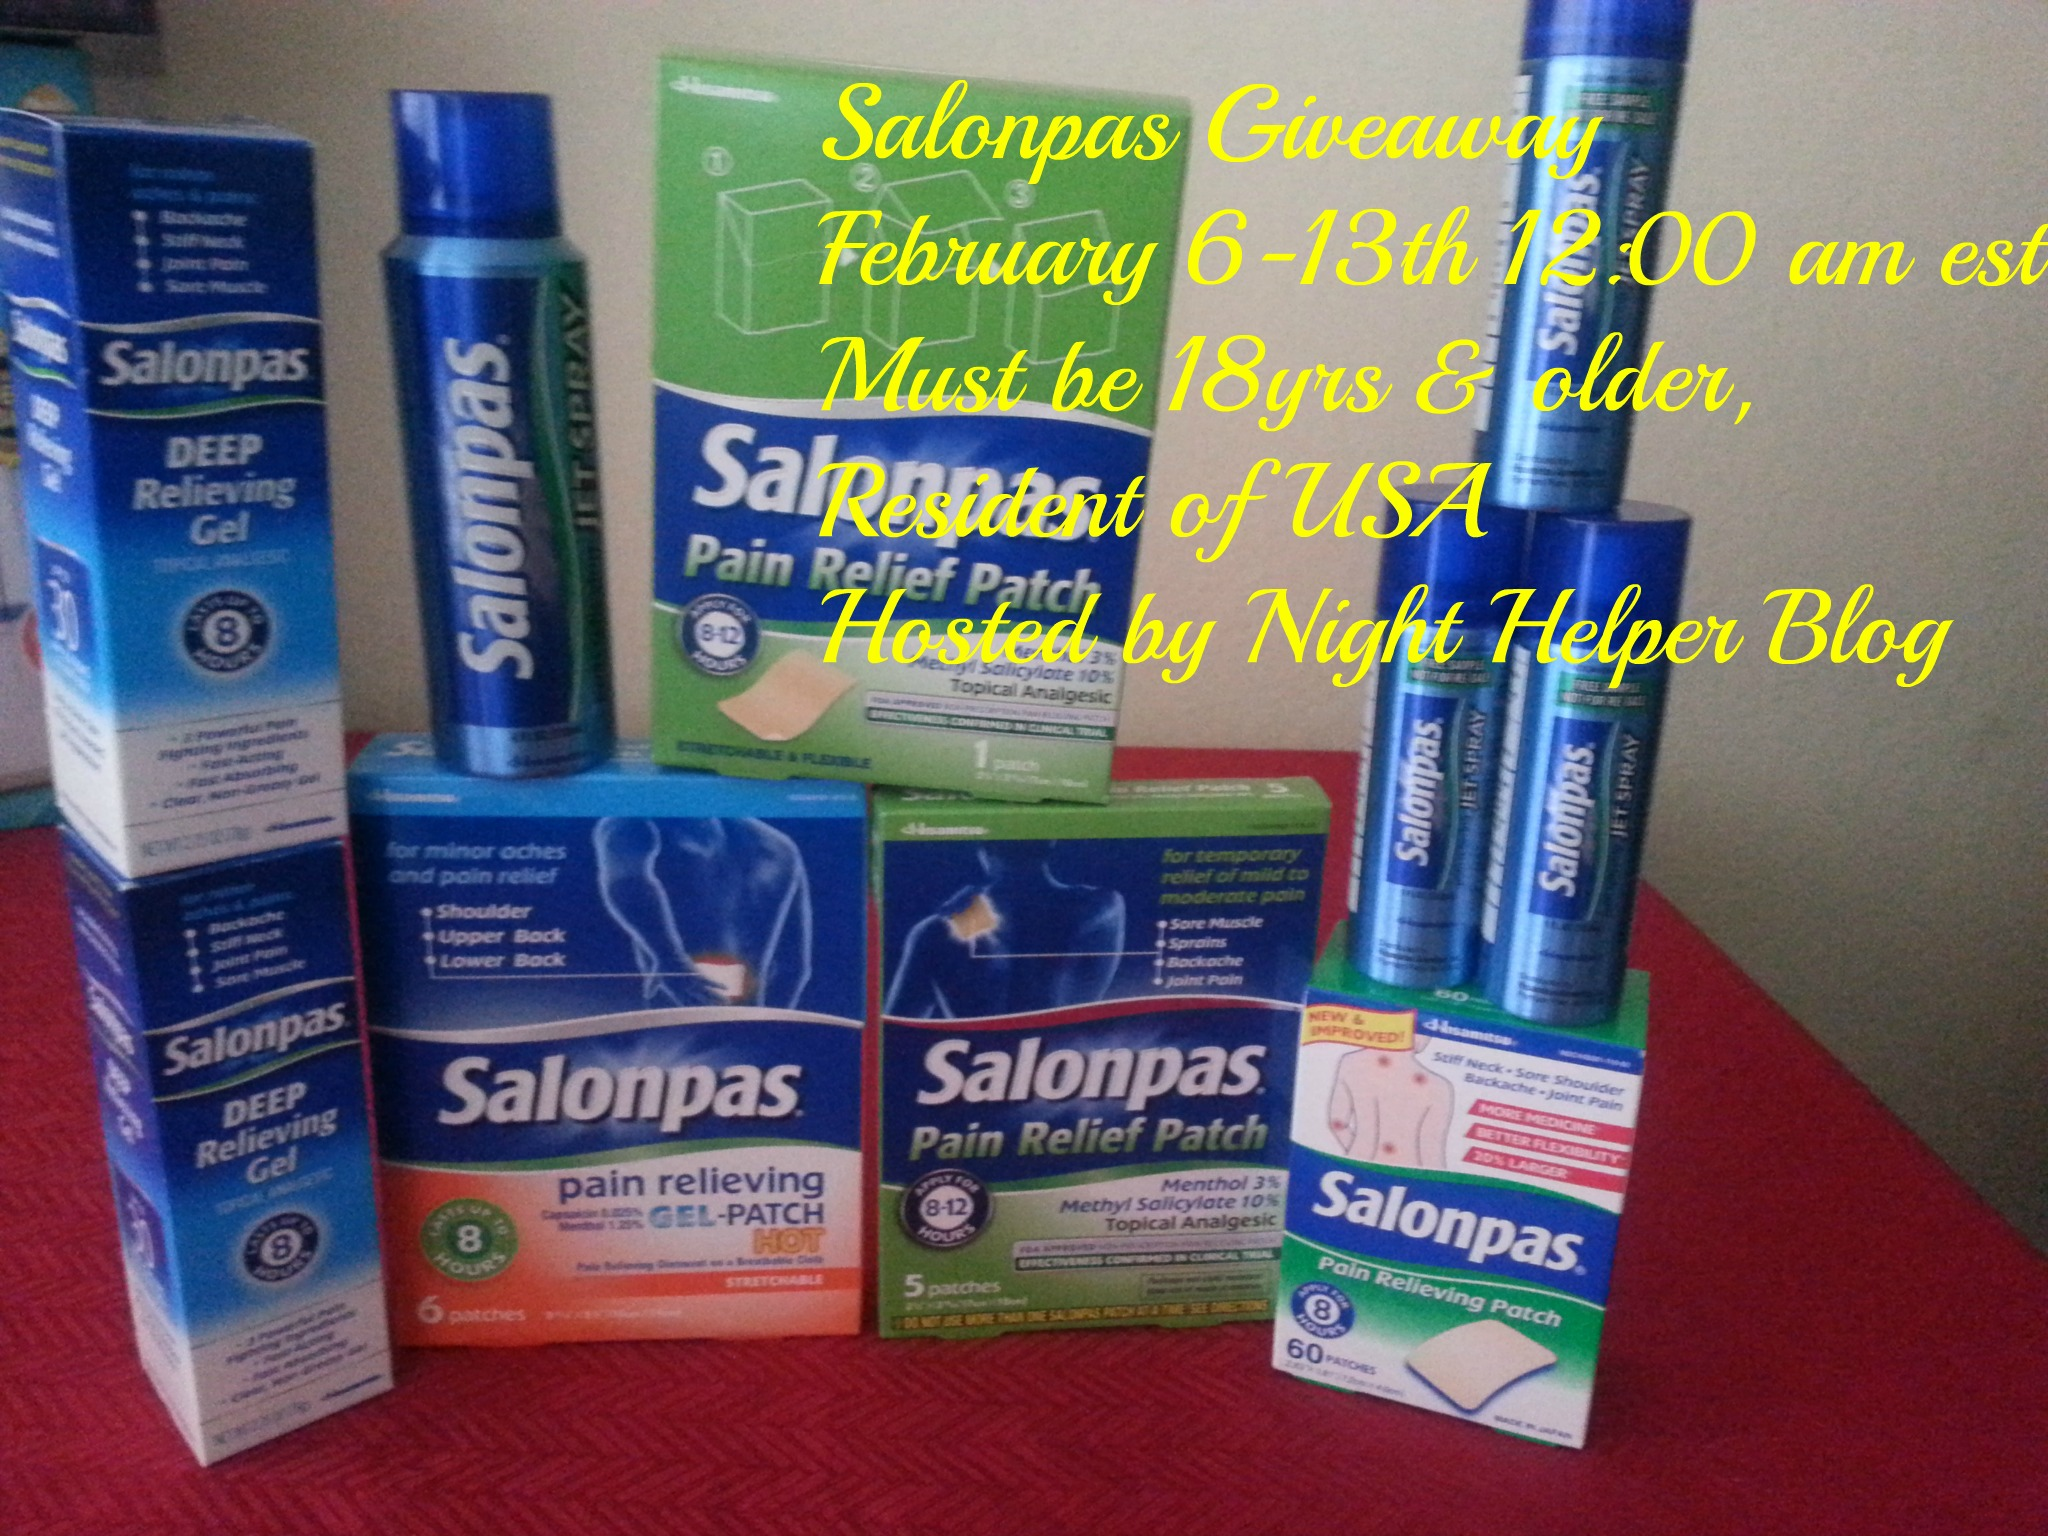 Salonpas Giveaway USA end 2/13